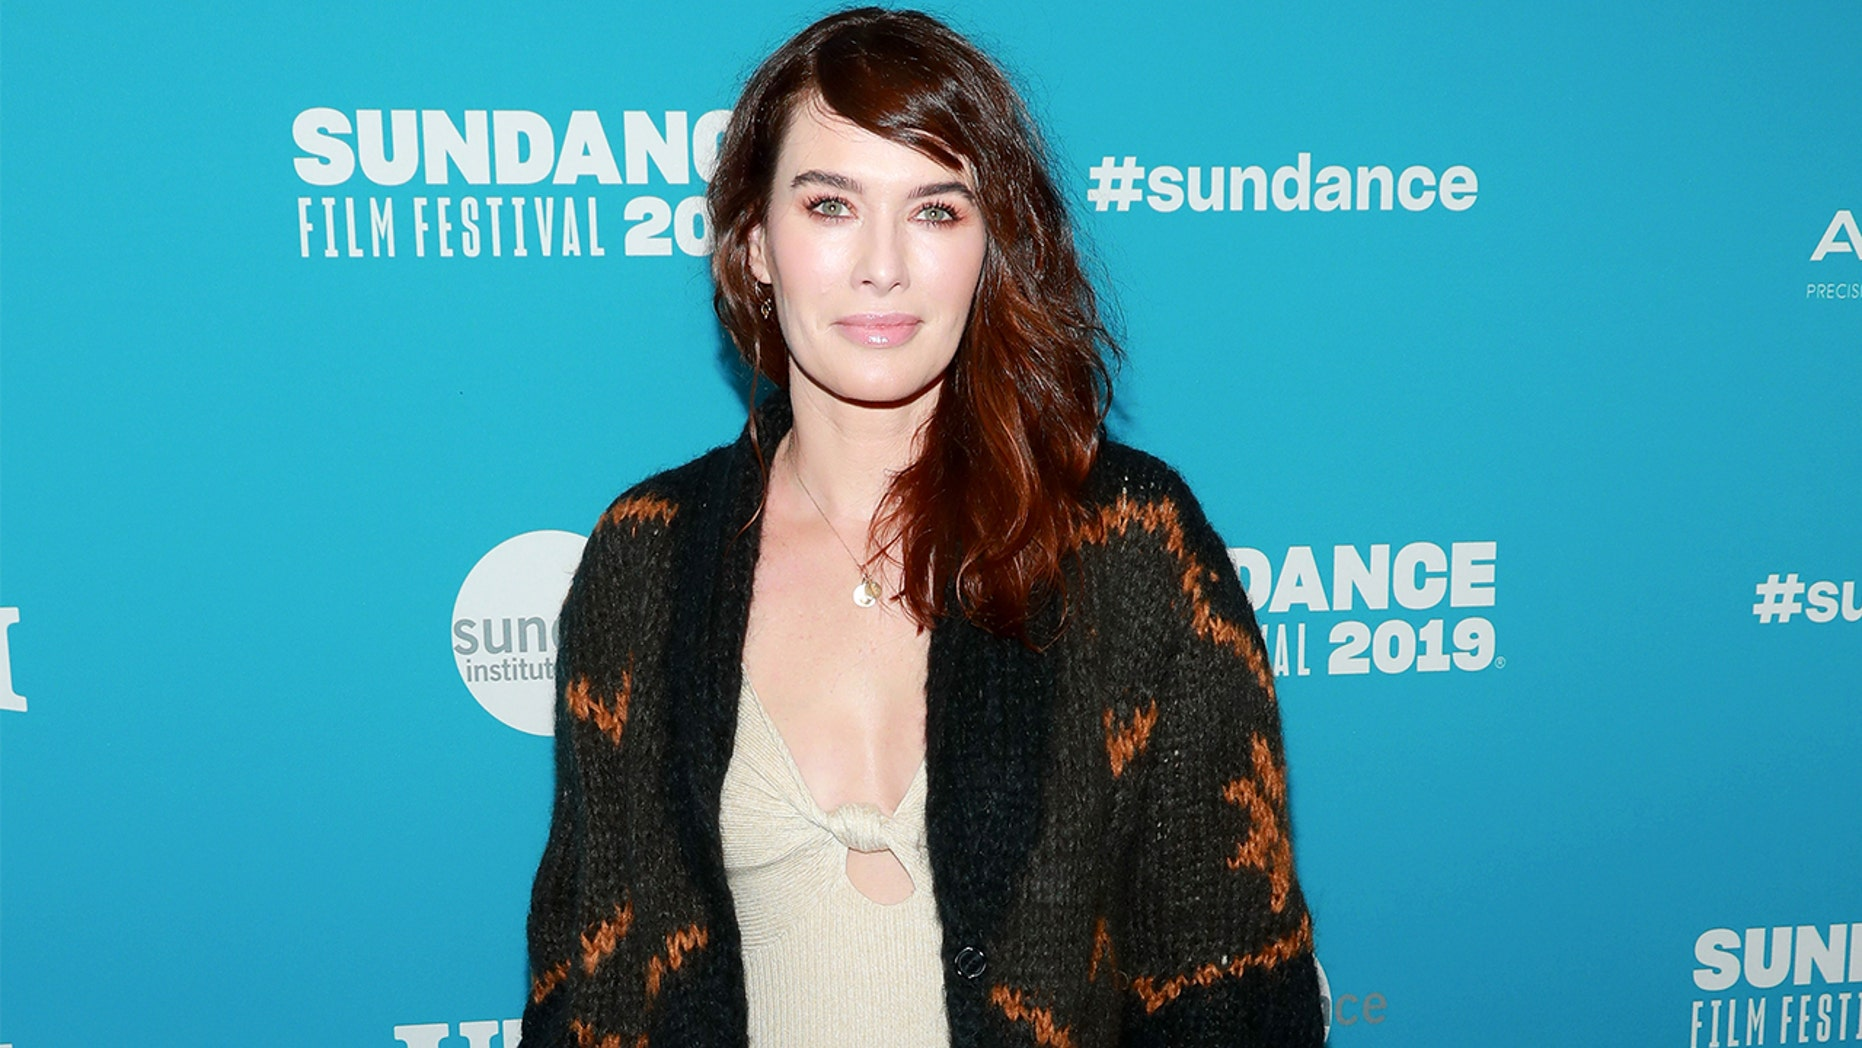 'Game of Thrones' star Lena Headey says in a new interview with the Sunday Times that rejecting Harvey Weinstein's alleged advances 'impacted a decade' of her career.